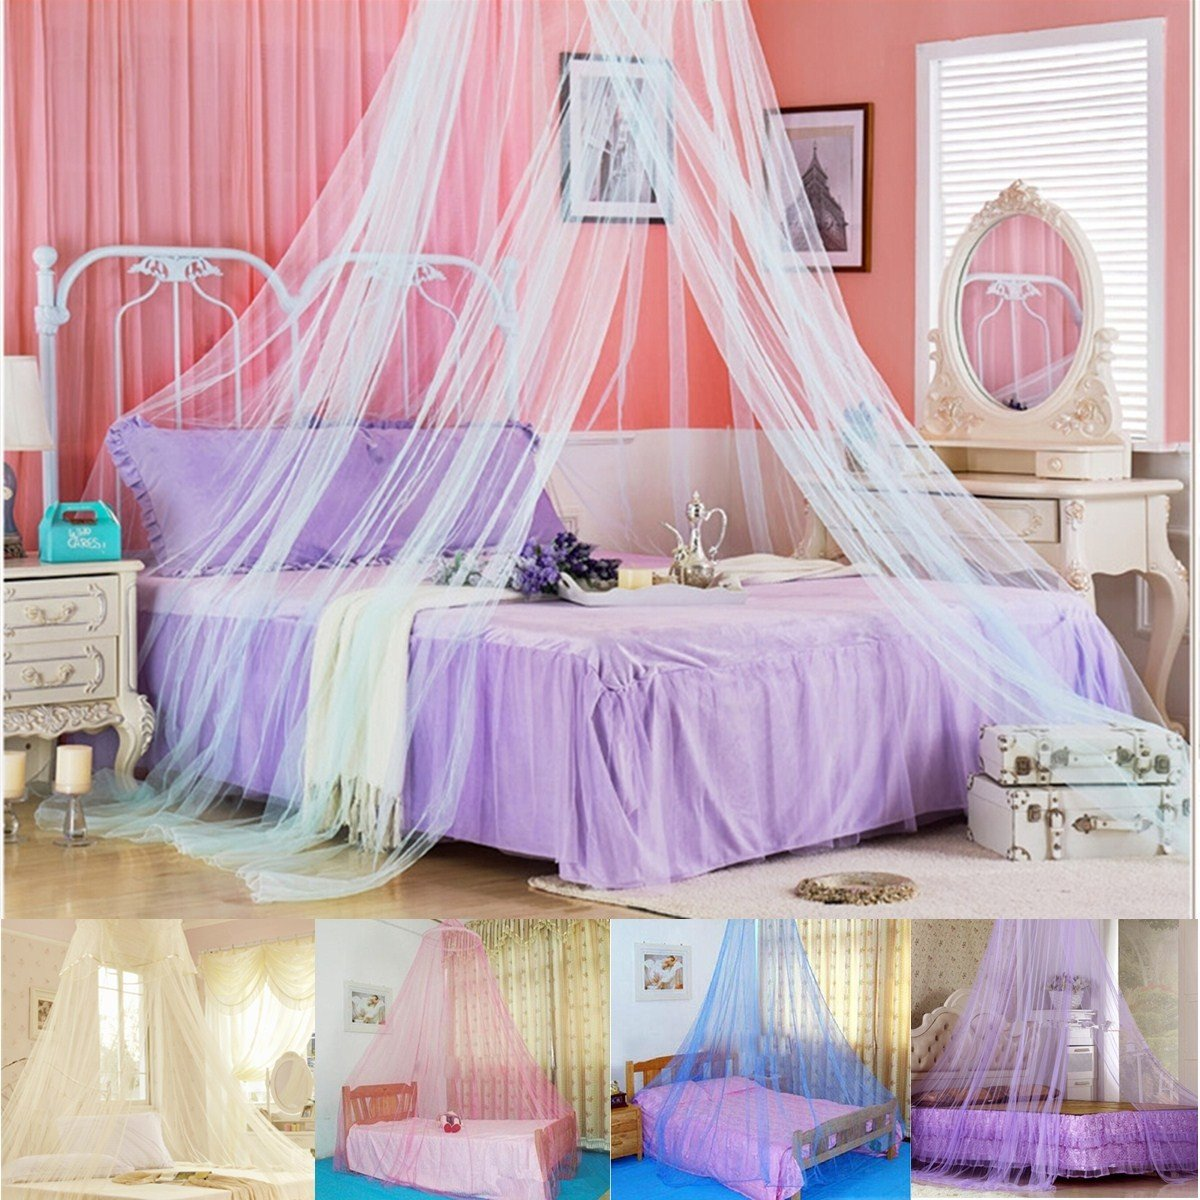 Bed Suspended From Ceiling Suspended Ceiling Lace Bed Netting Canopy Soft Dome